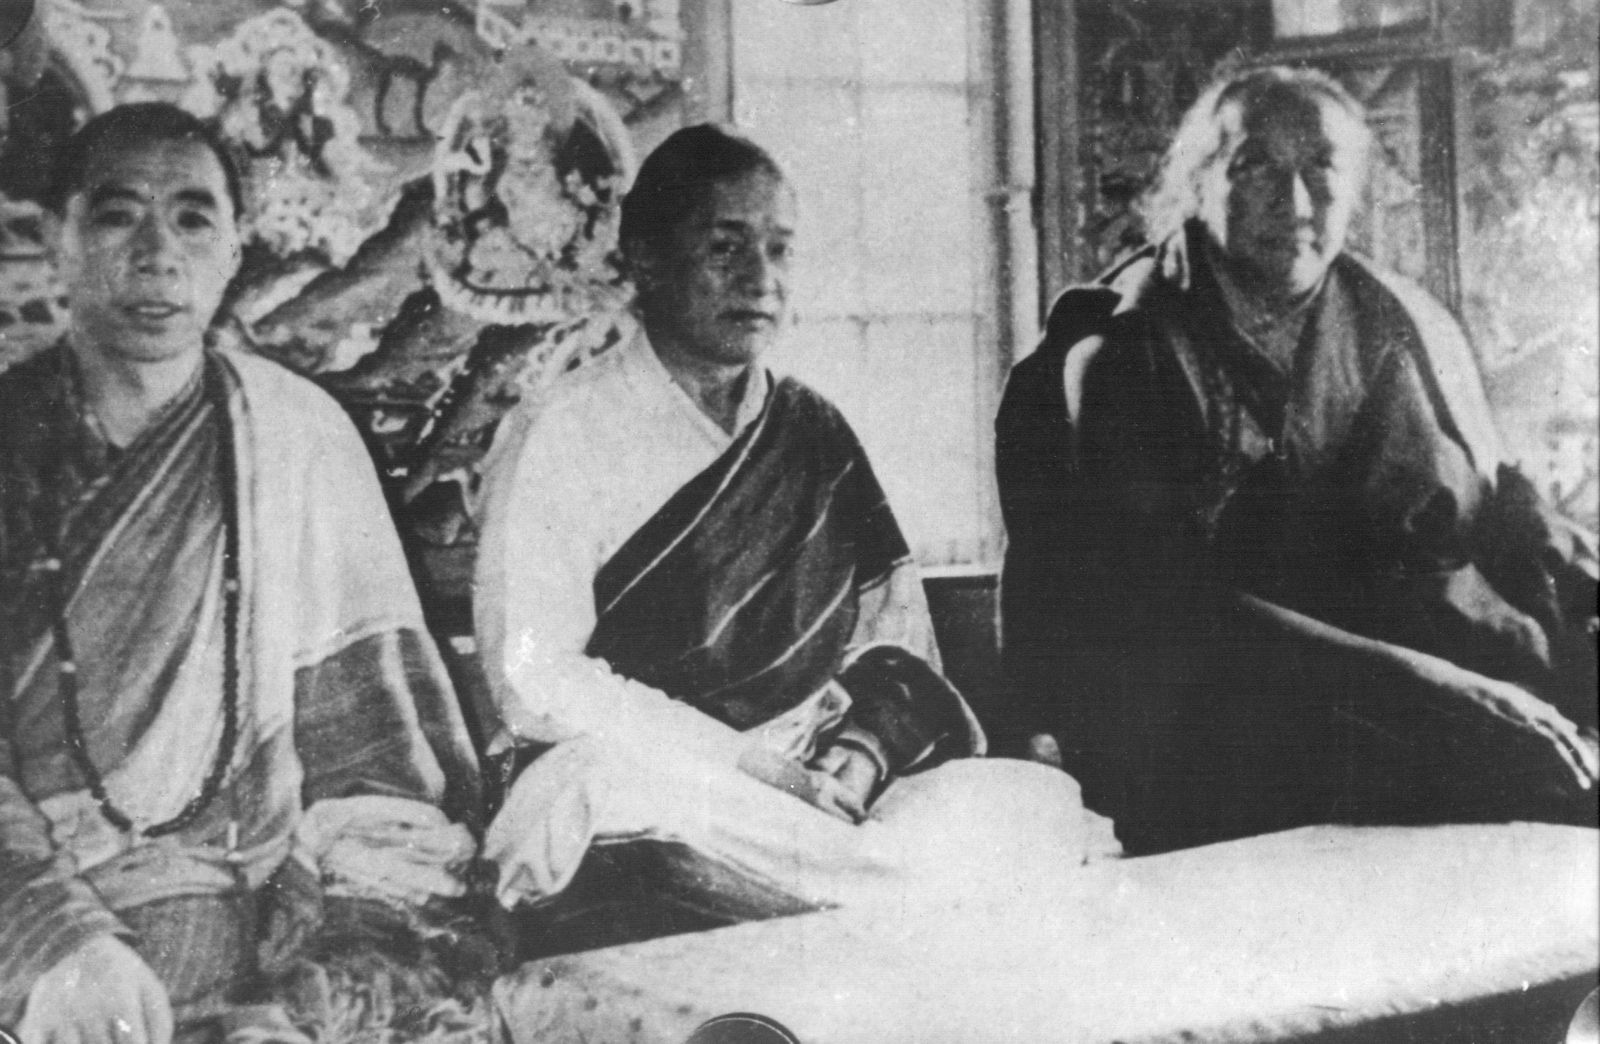 Hh chatral rinpoche hh dudjom rinpoche and hh dilgo khyentse